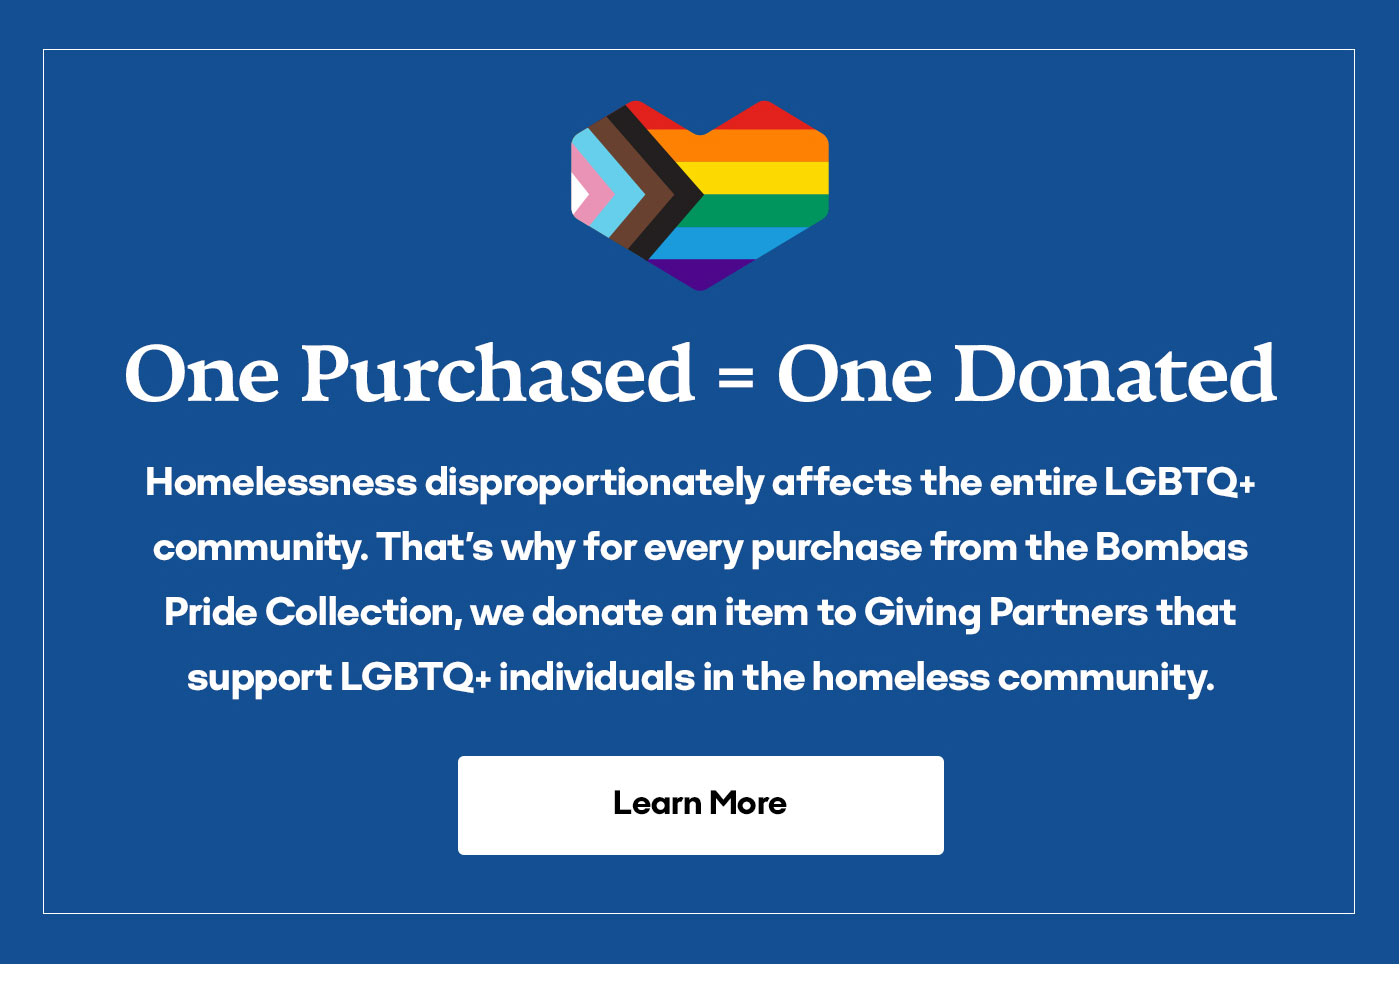 One Purchased=One Donated | Homelessness disproportionately affects the entire LGBTQ+ community. That's why for every purchase from the Bombas Pride Collection, we donate an item to Giving Partners that support LGBTQ+ individuals in the homeless community. | Learn More